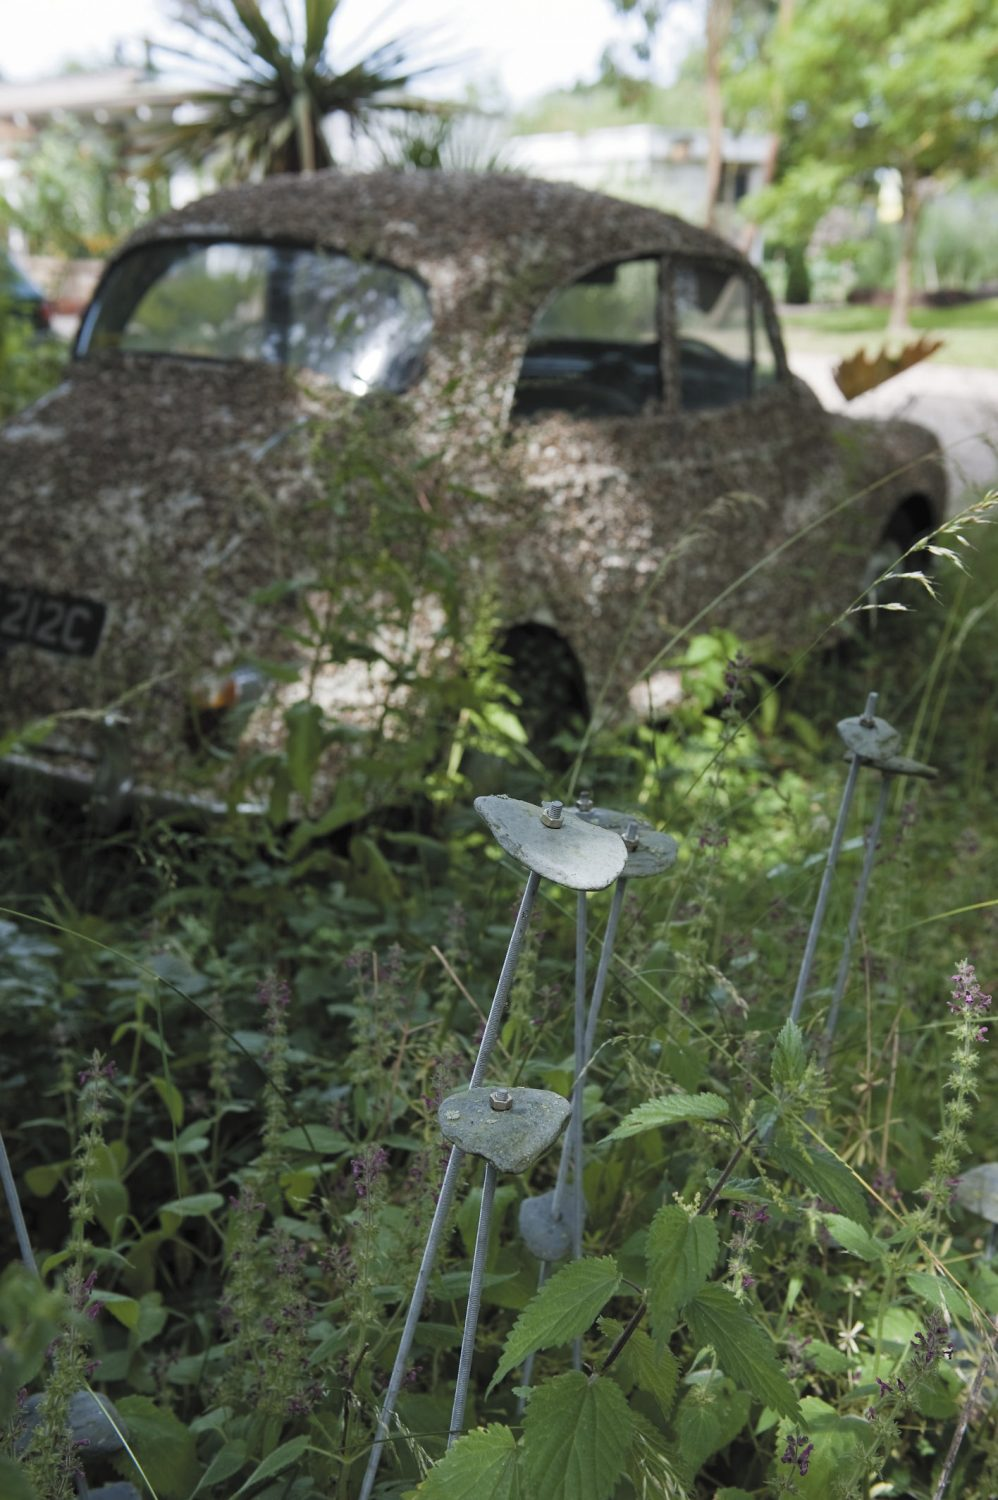 Dozing in the shade amid wild flowers and ornamental rhubarb is a 1960s Morris Minor, pebble-dashed with gravel left over from resurfacing the drive